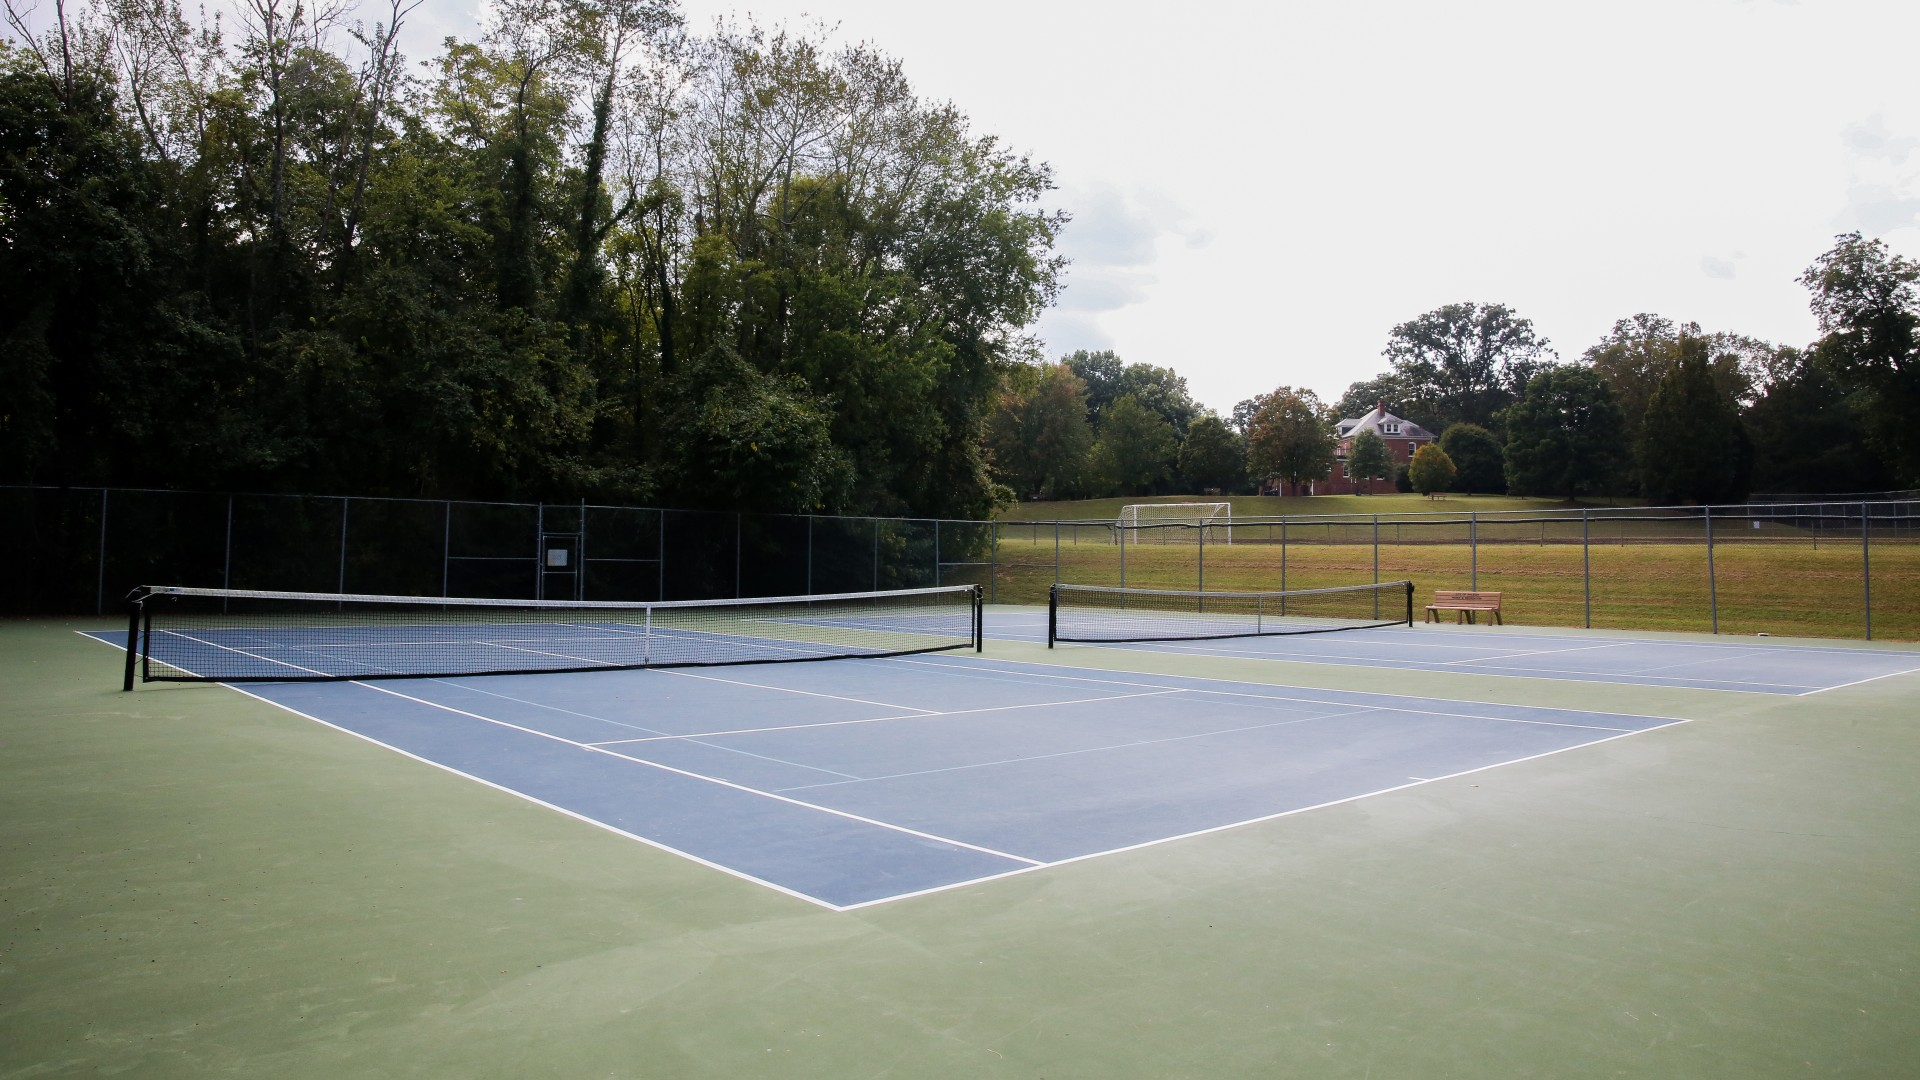 Two outdoor tennis courts